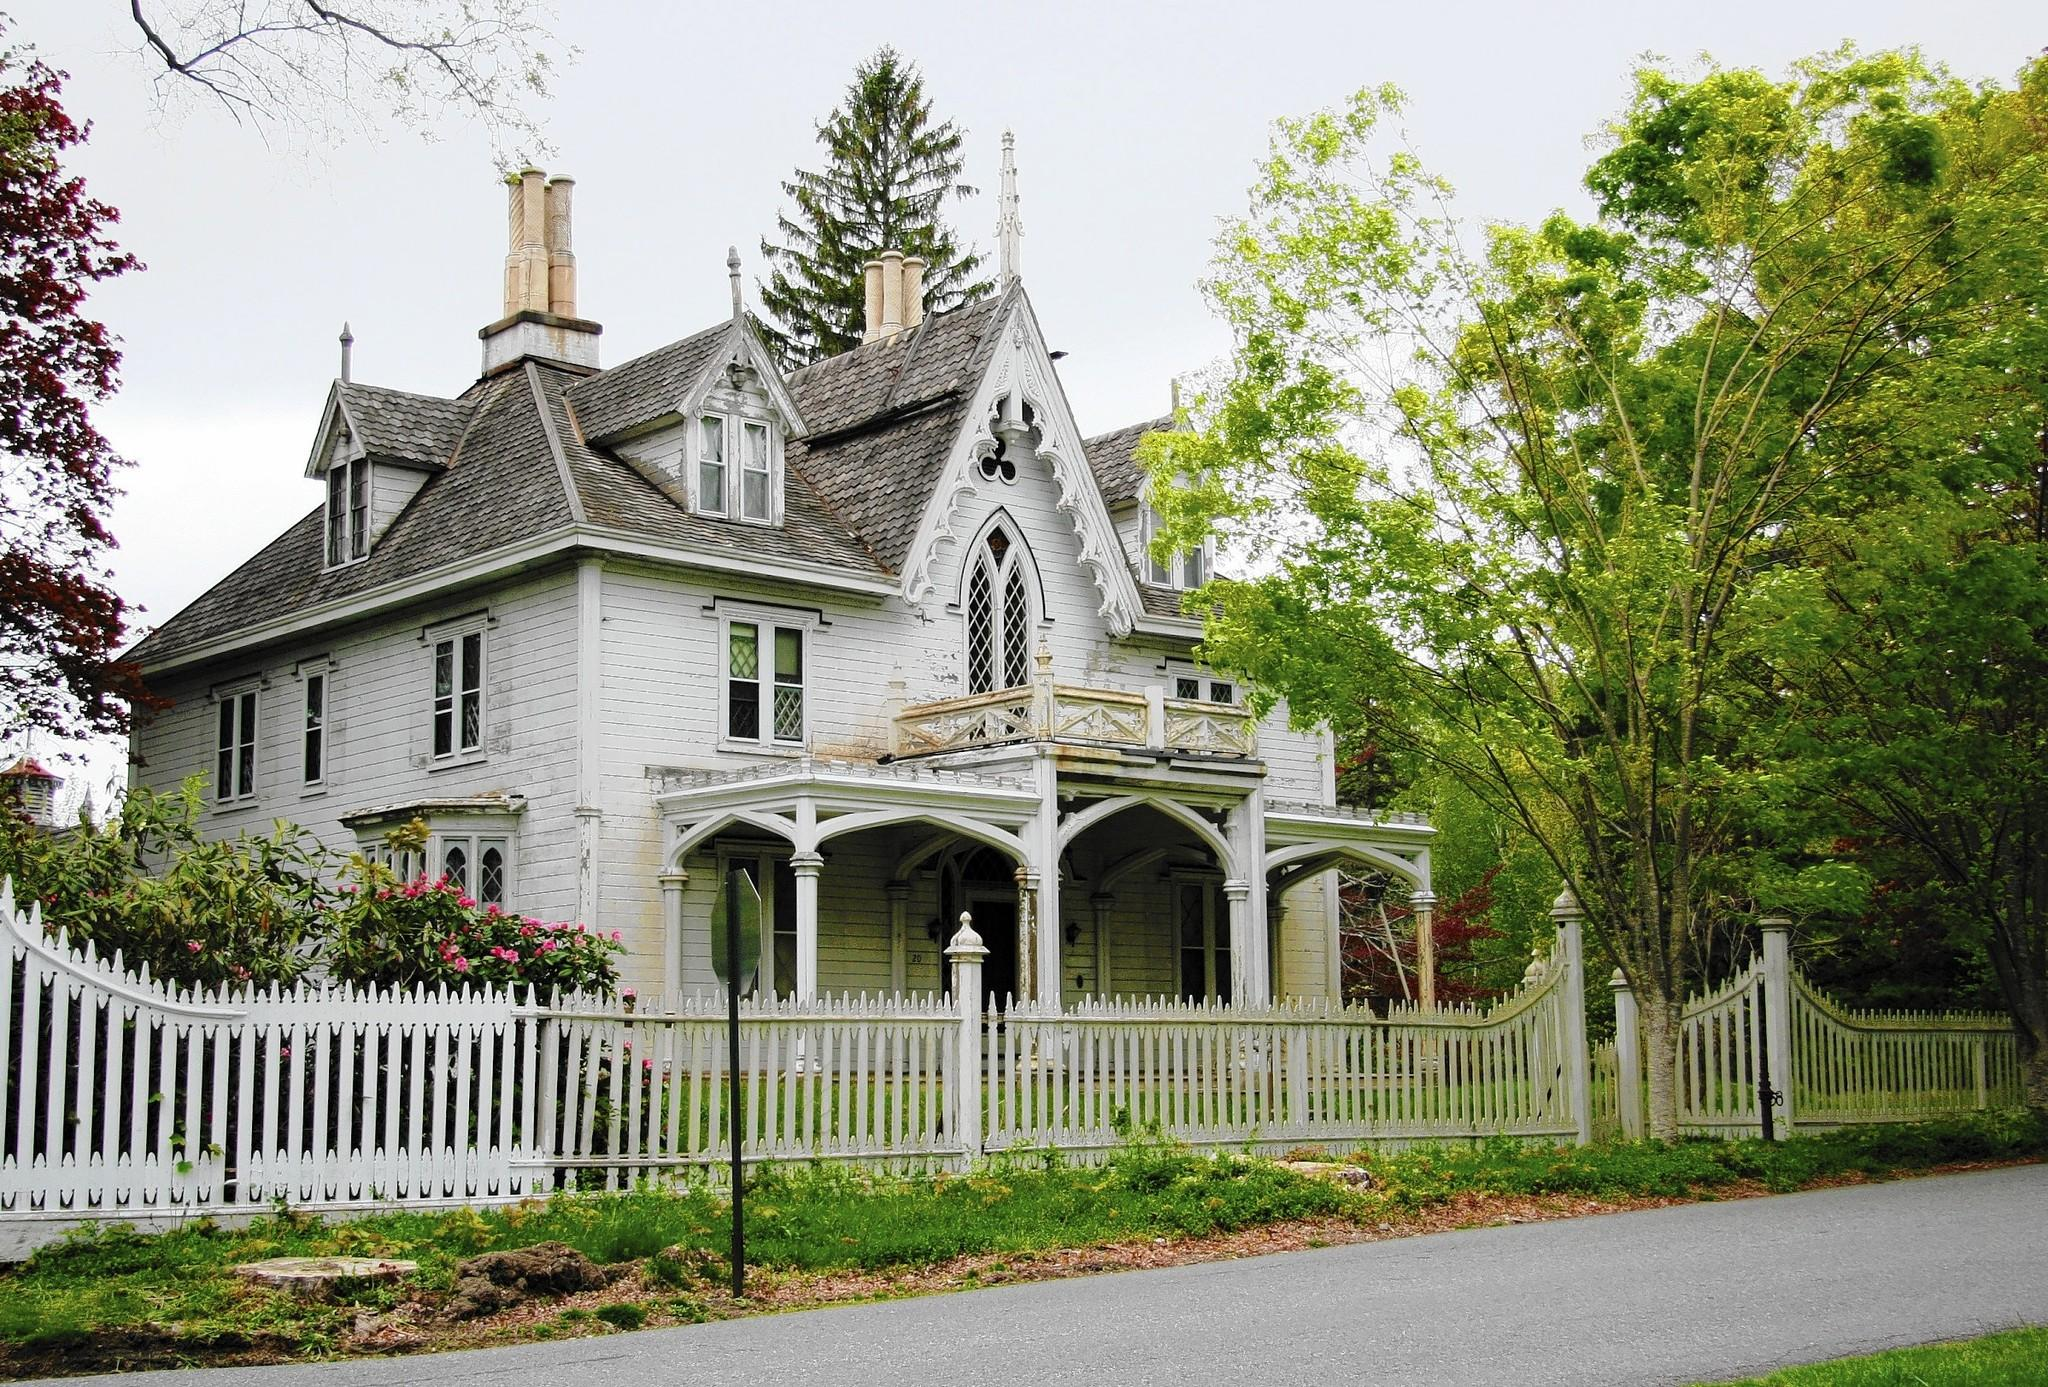 Owner 39 s neglect demolishing historic thompson house mario for Old style homes built new